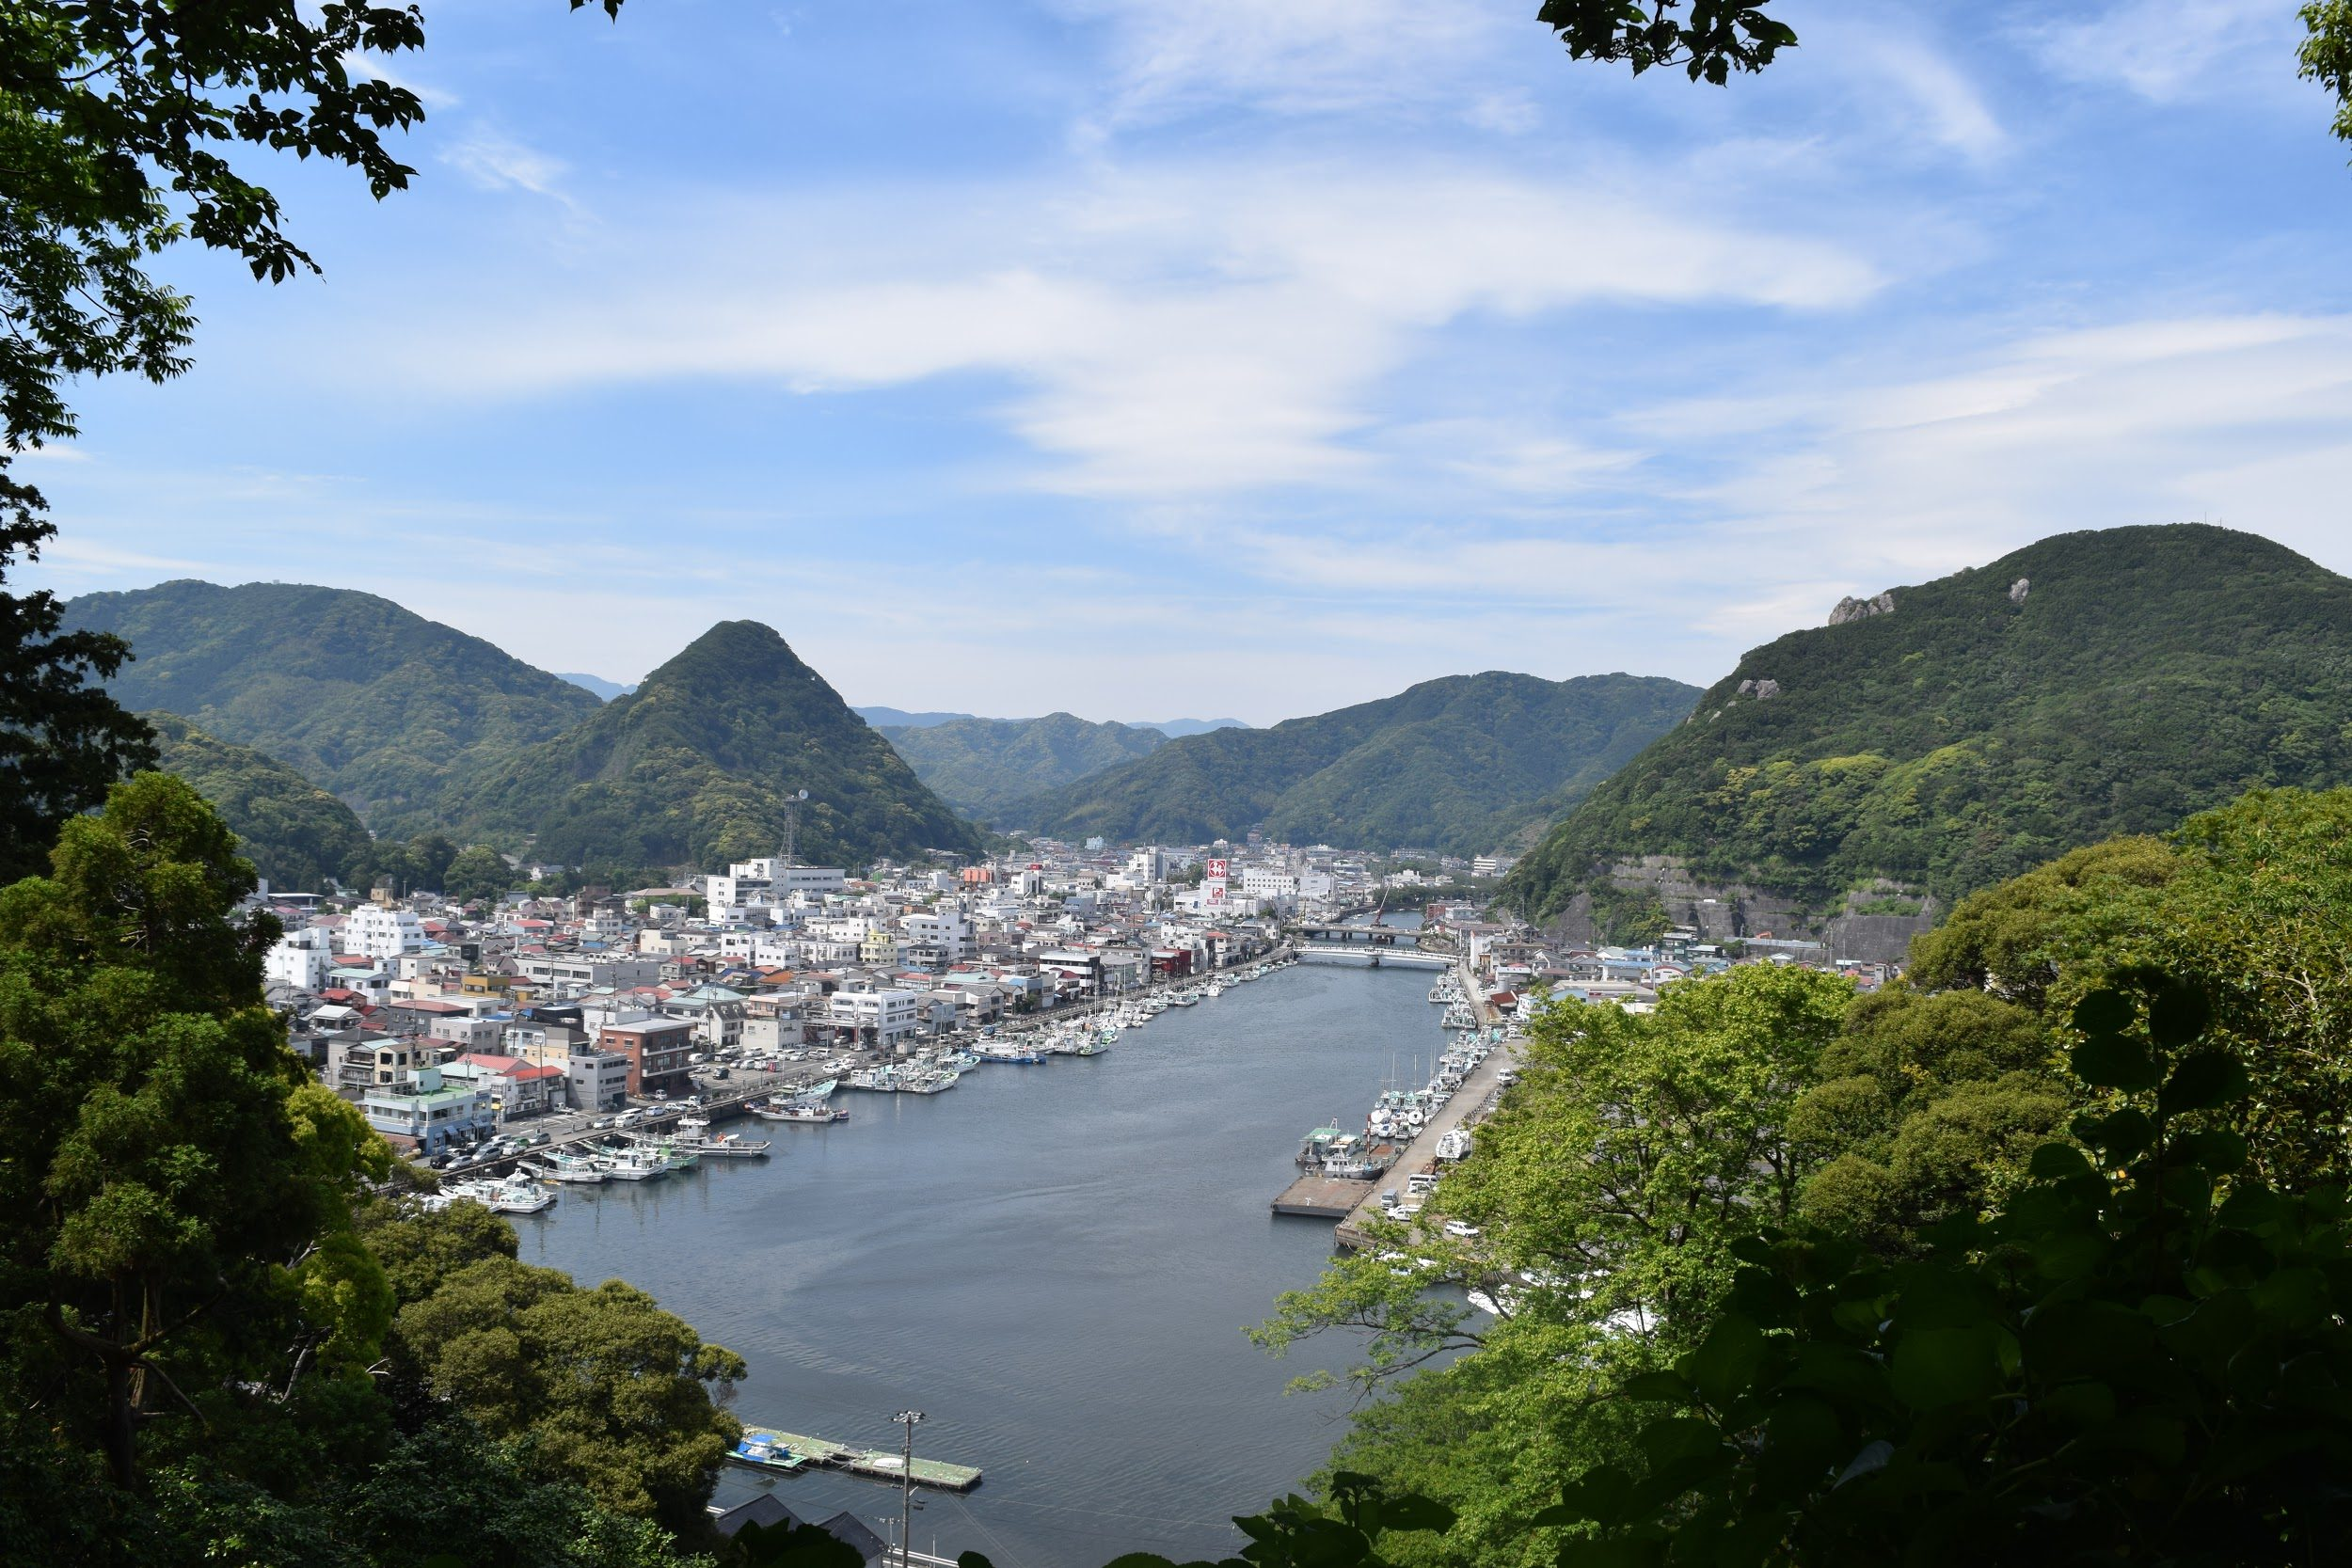 Shimoda: A paradise of beaches and fascinating history